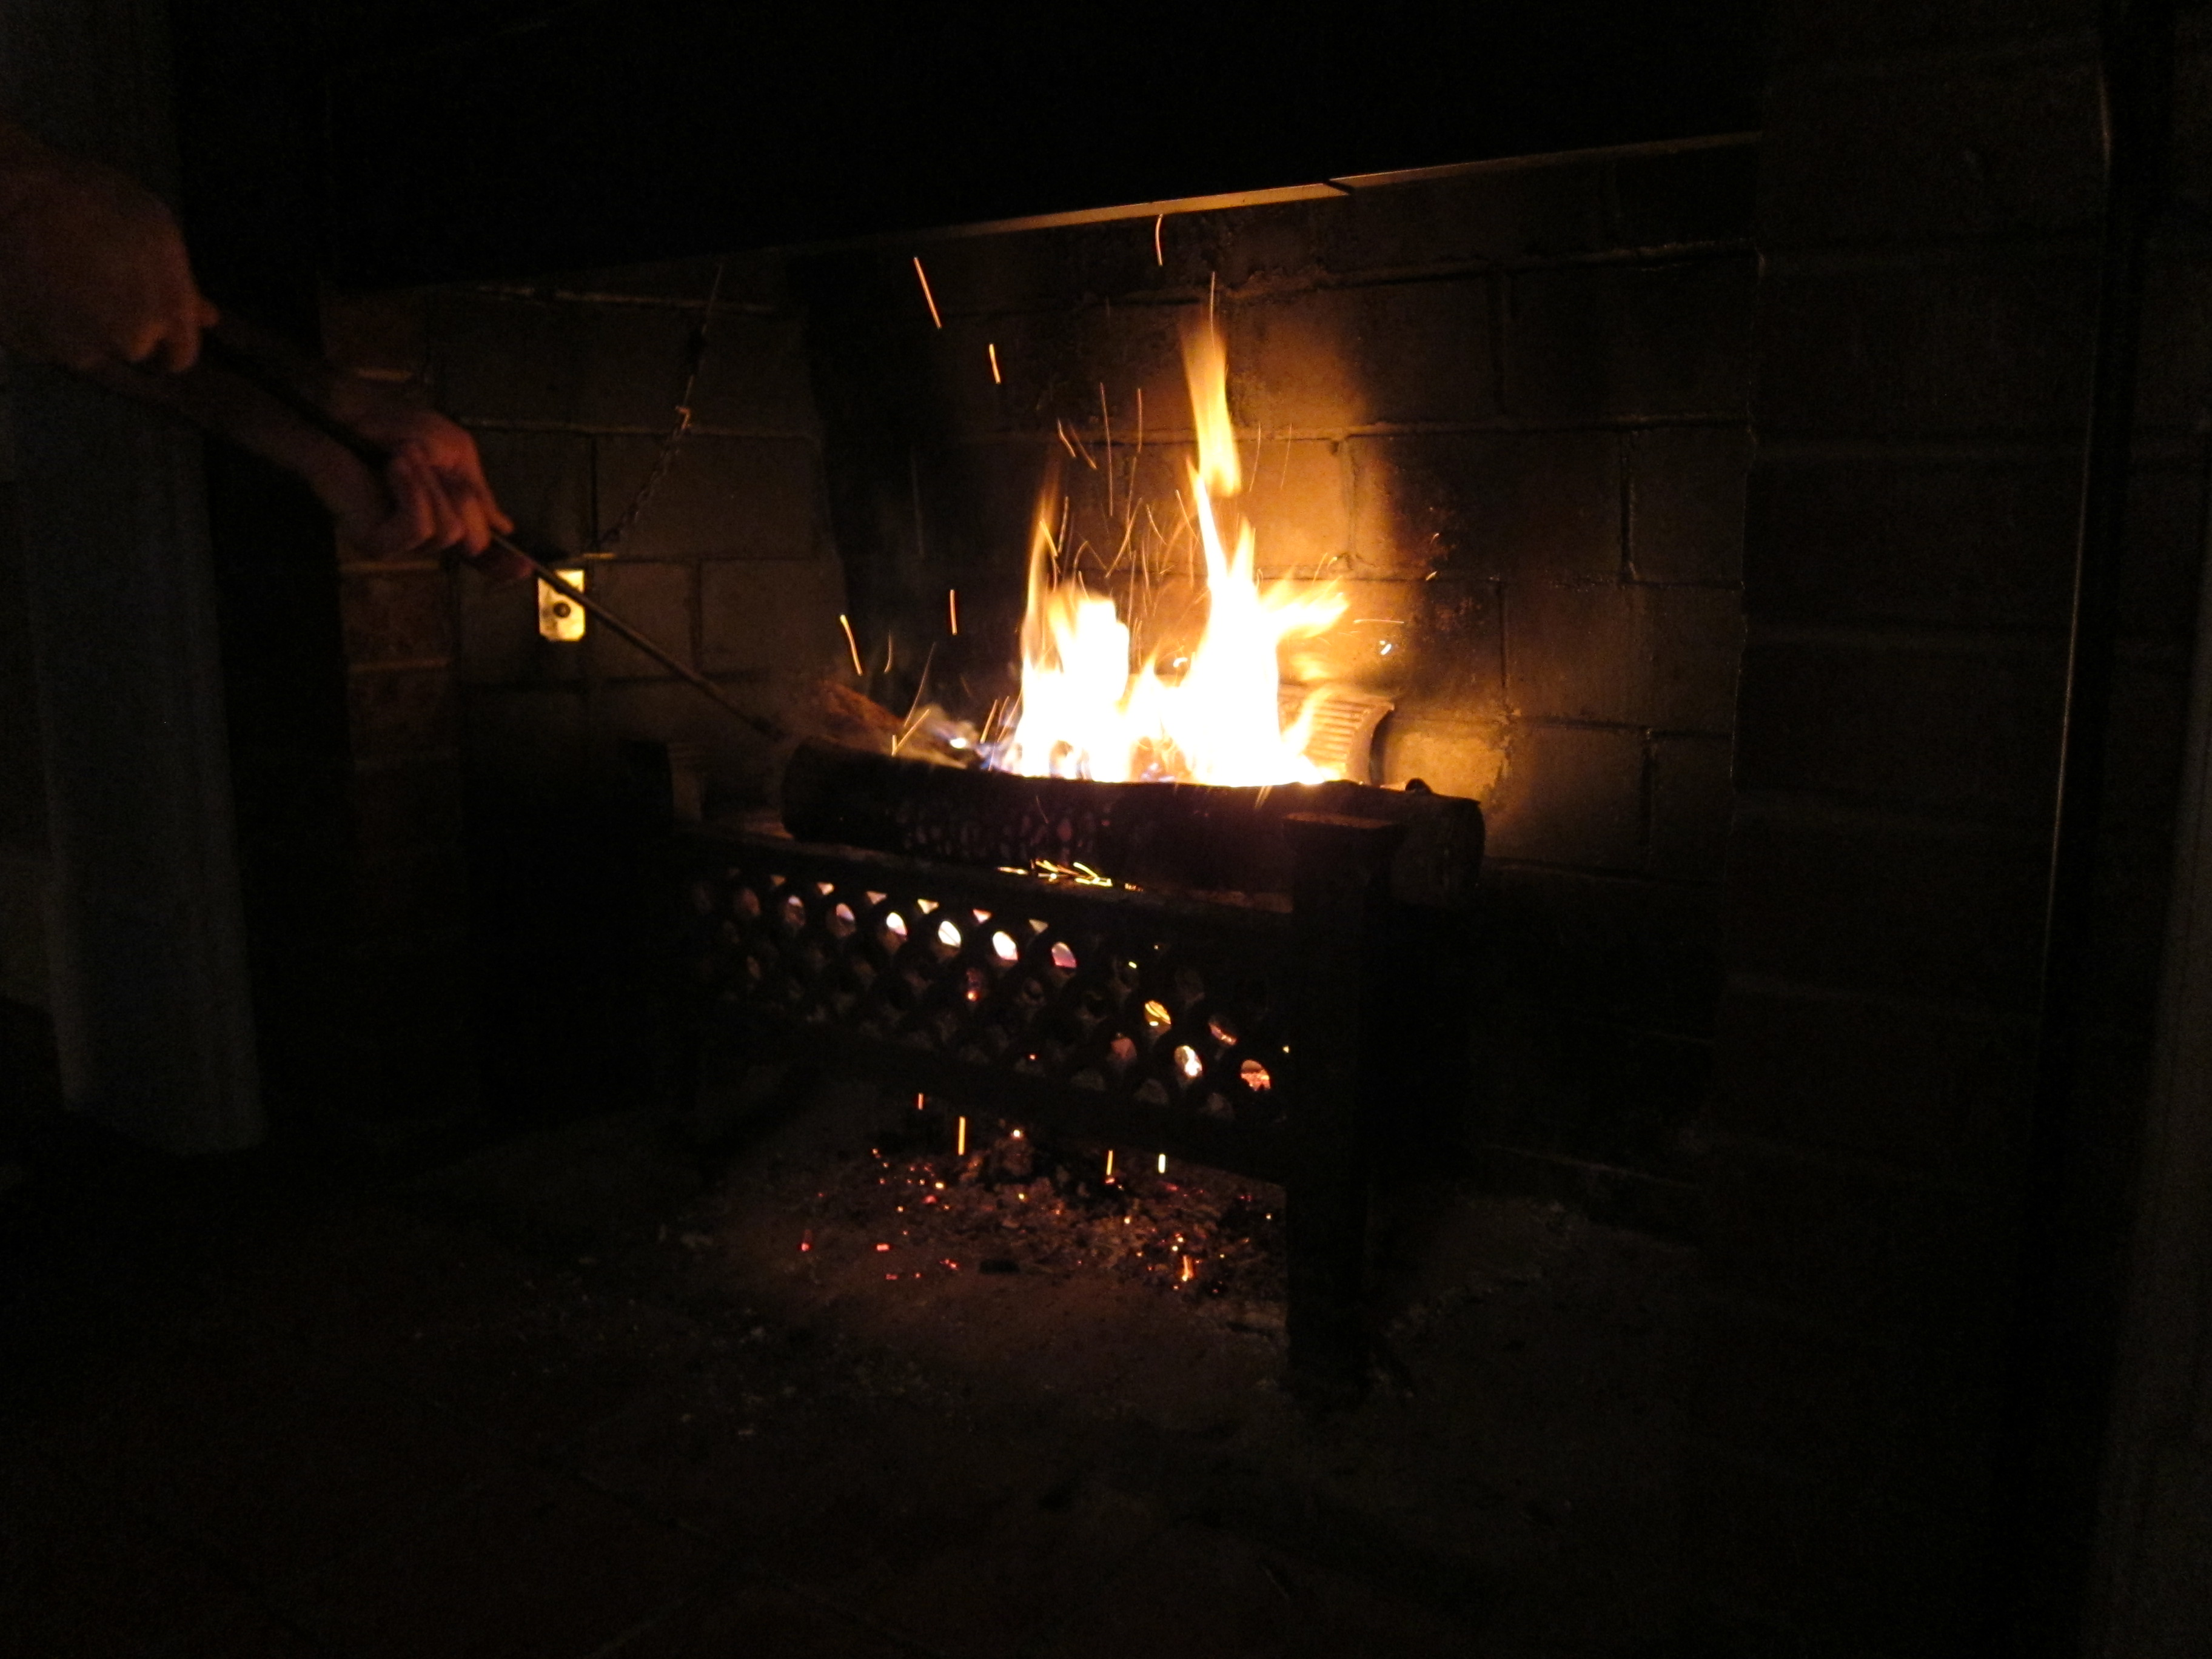 how to get fireplace smoke smell out of room